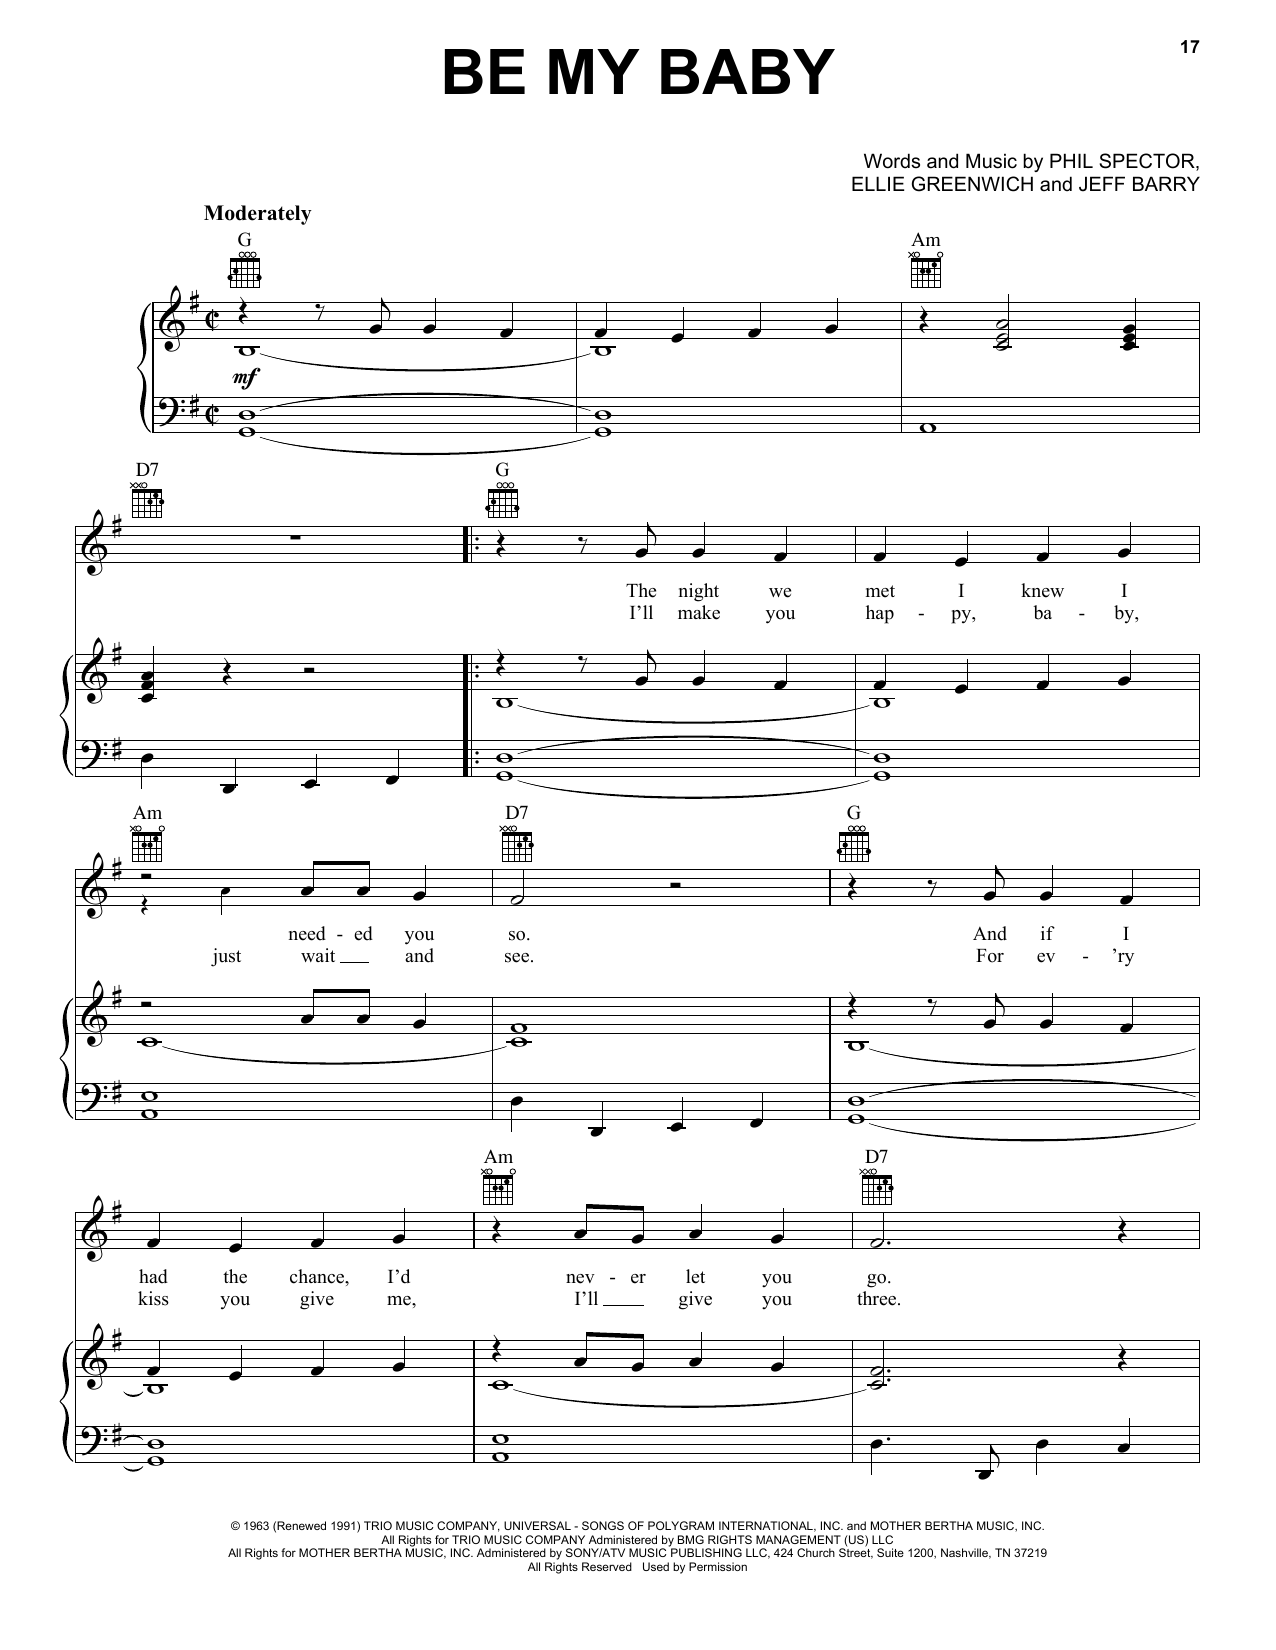 Be My Baby Sheet Music